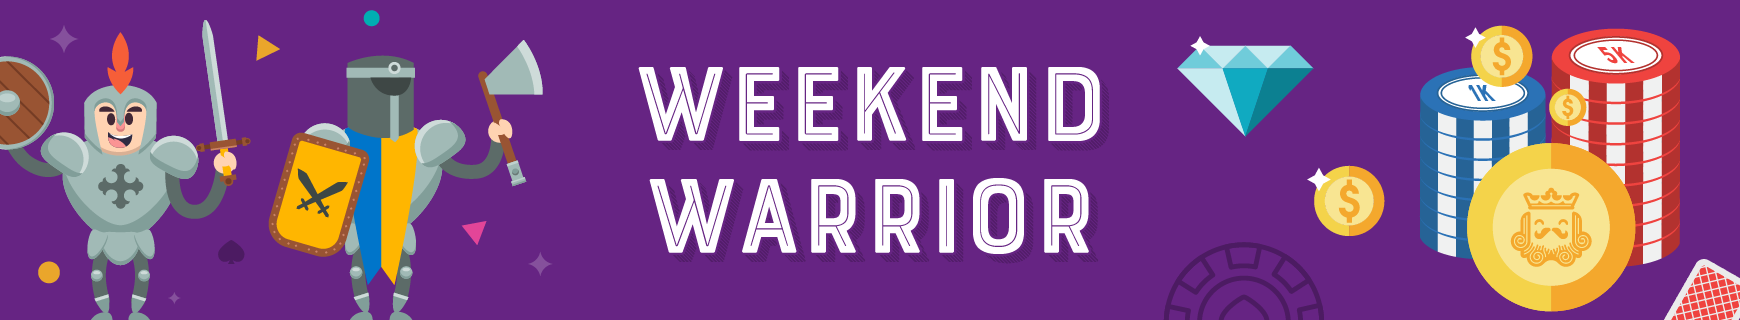 Weekend warrior %28870 x 160%29 2x